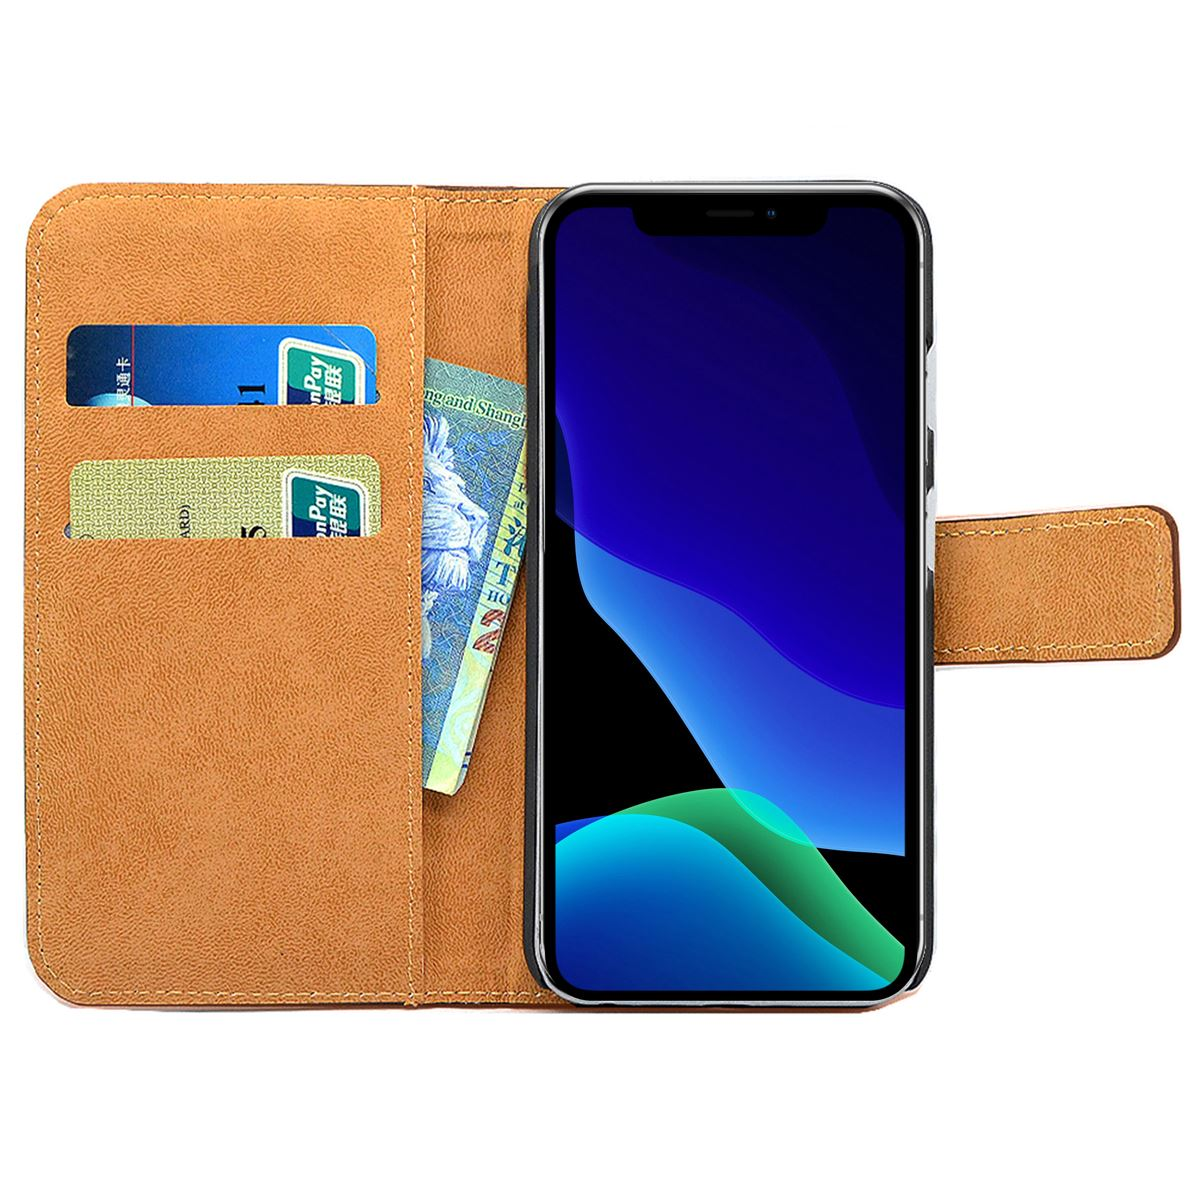 Flip-Card-Wallet-Case-For-Apple-iPhone-11-Pro-Max-X-Luxury-Leather-Phone-Cover thumbnail 6